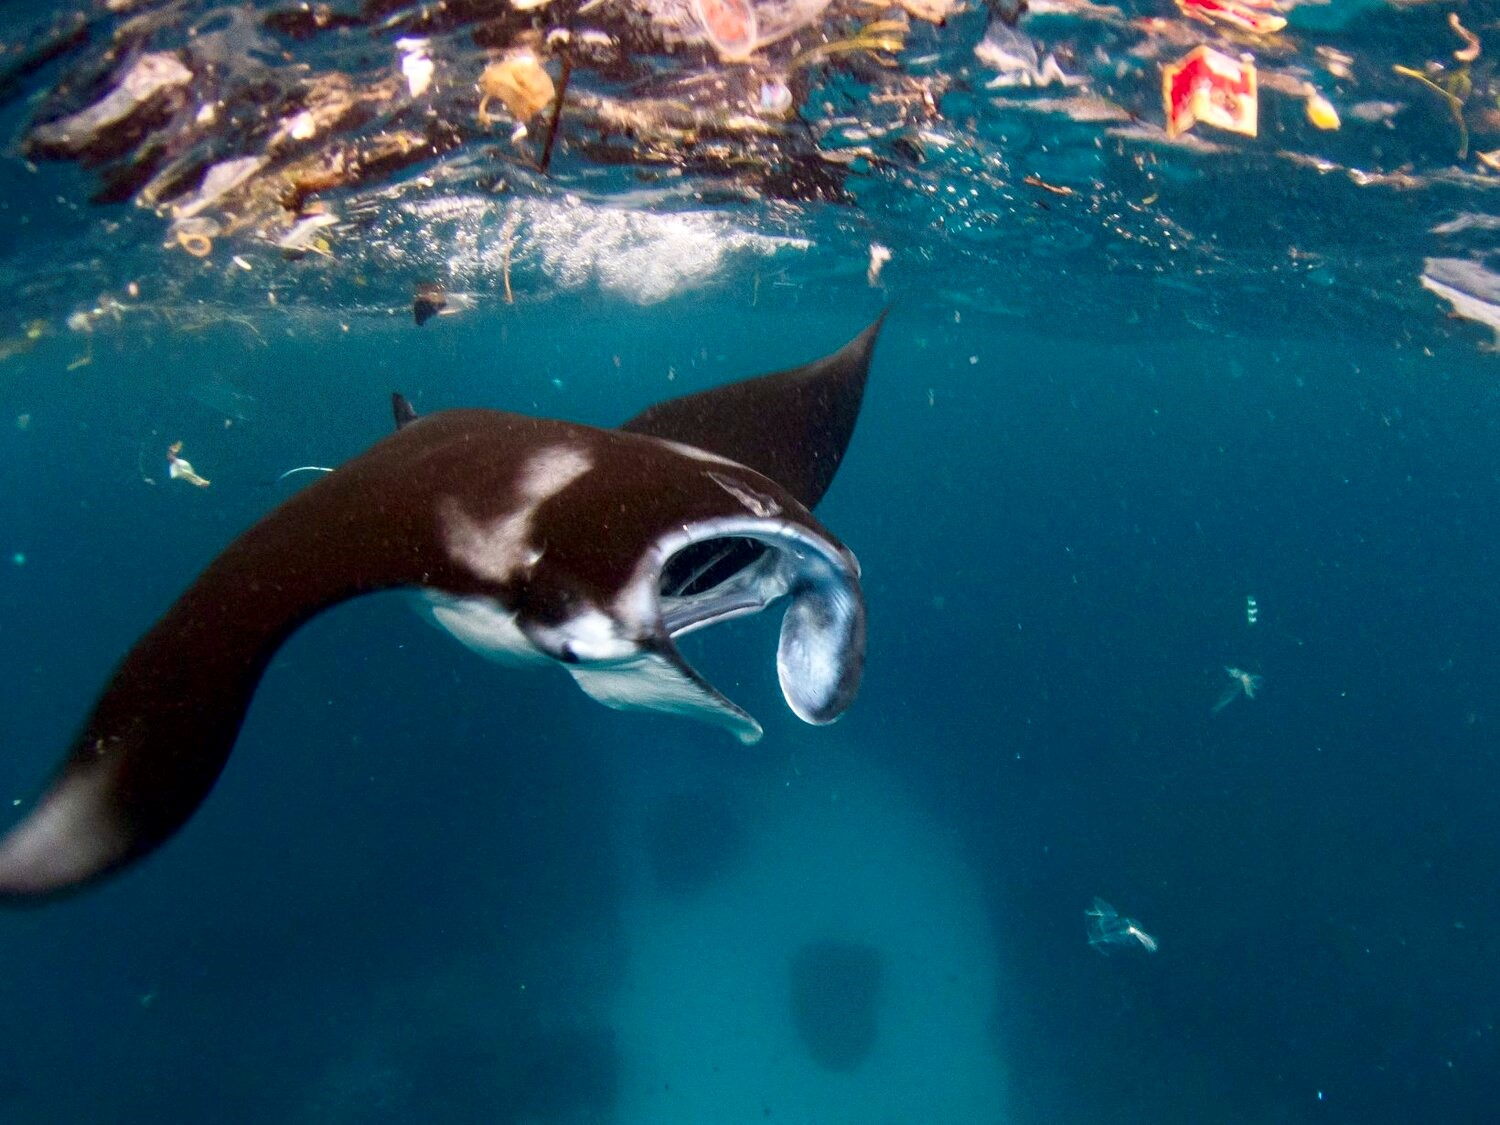 MMF study researching microplastics in Manta Ray feeding grounds